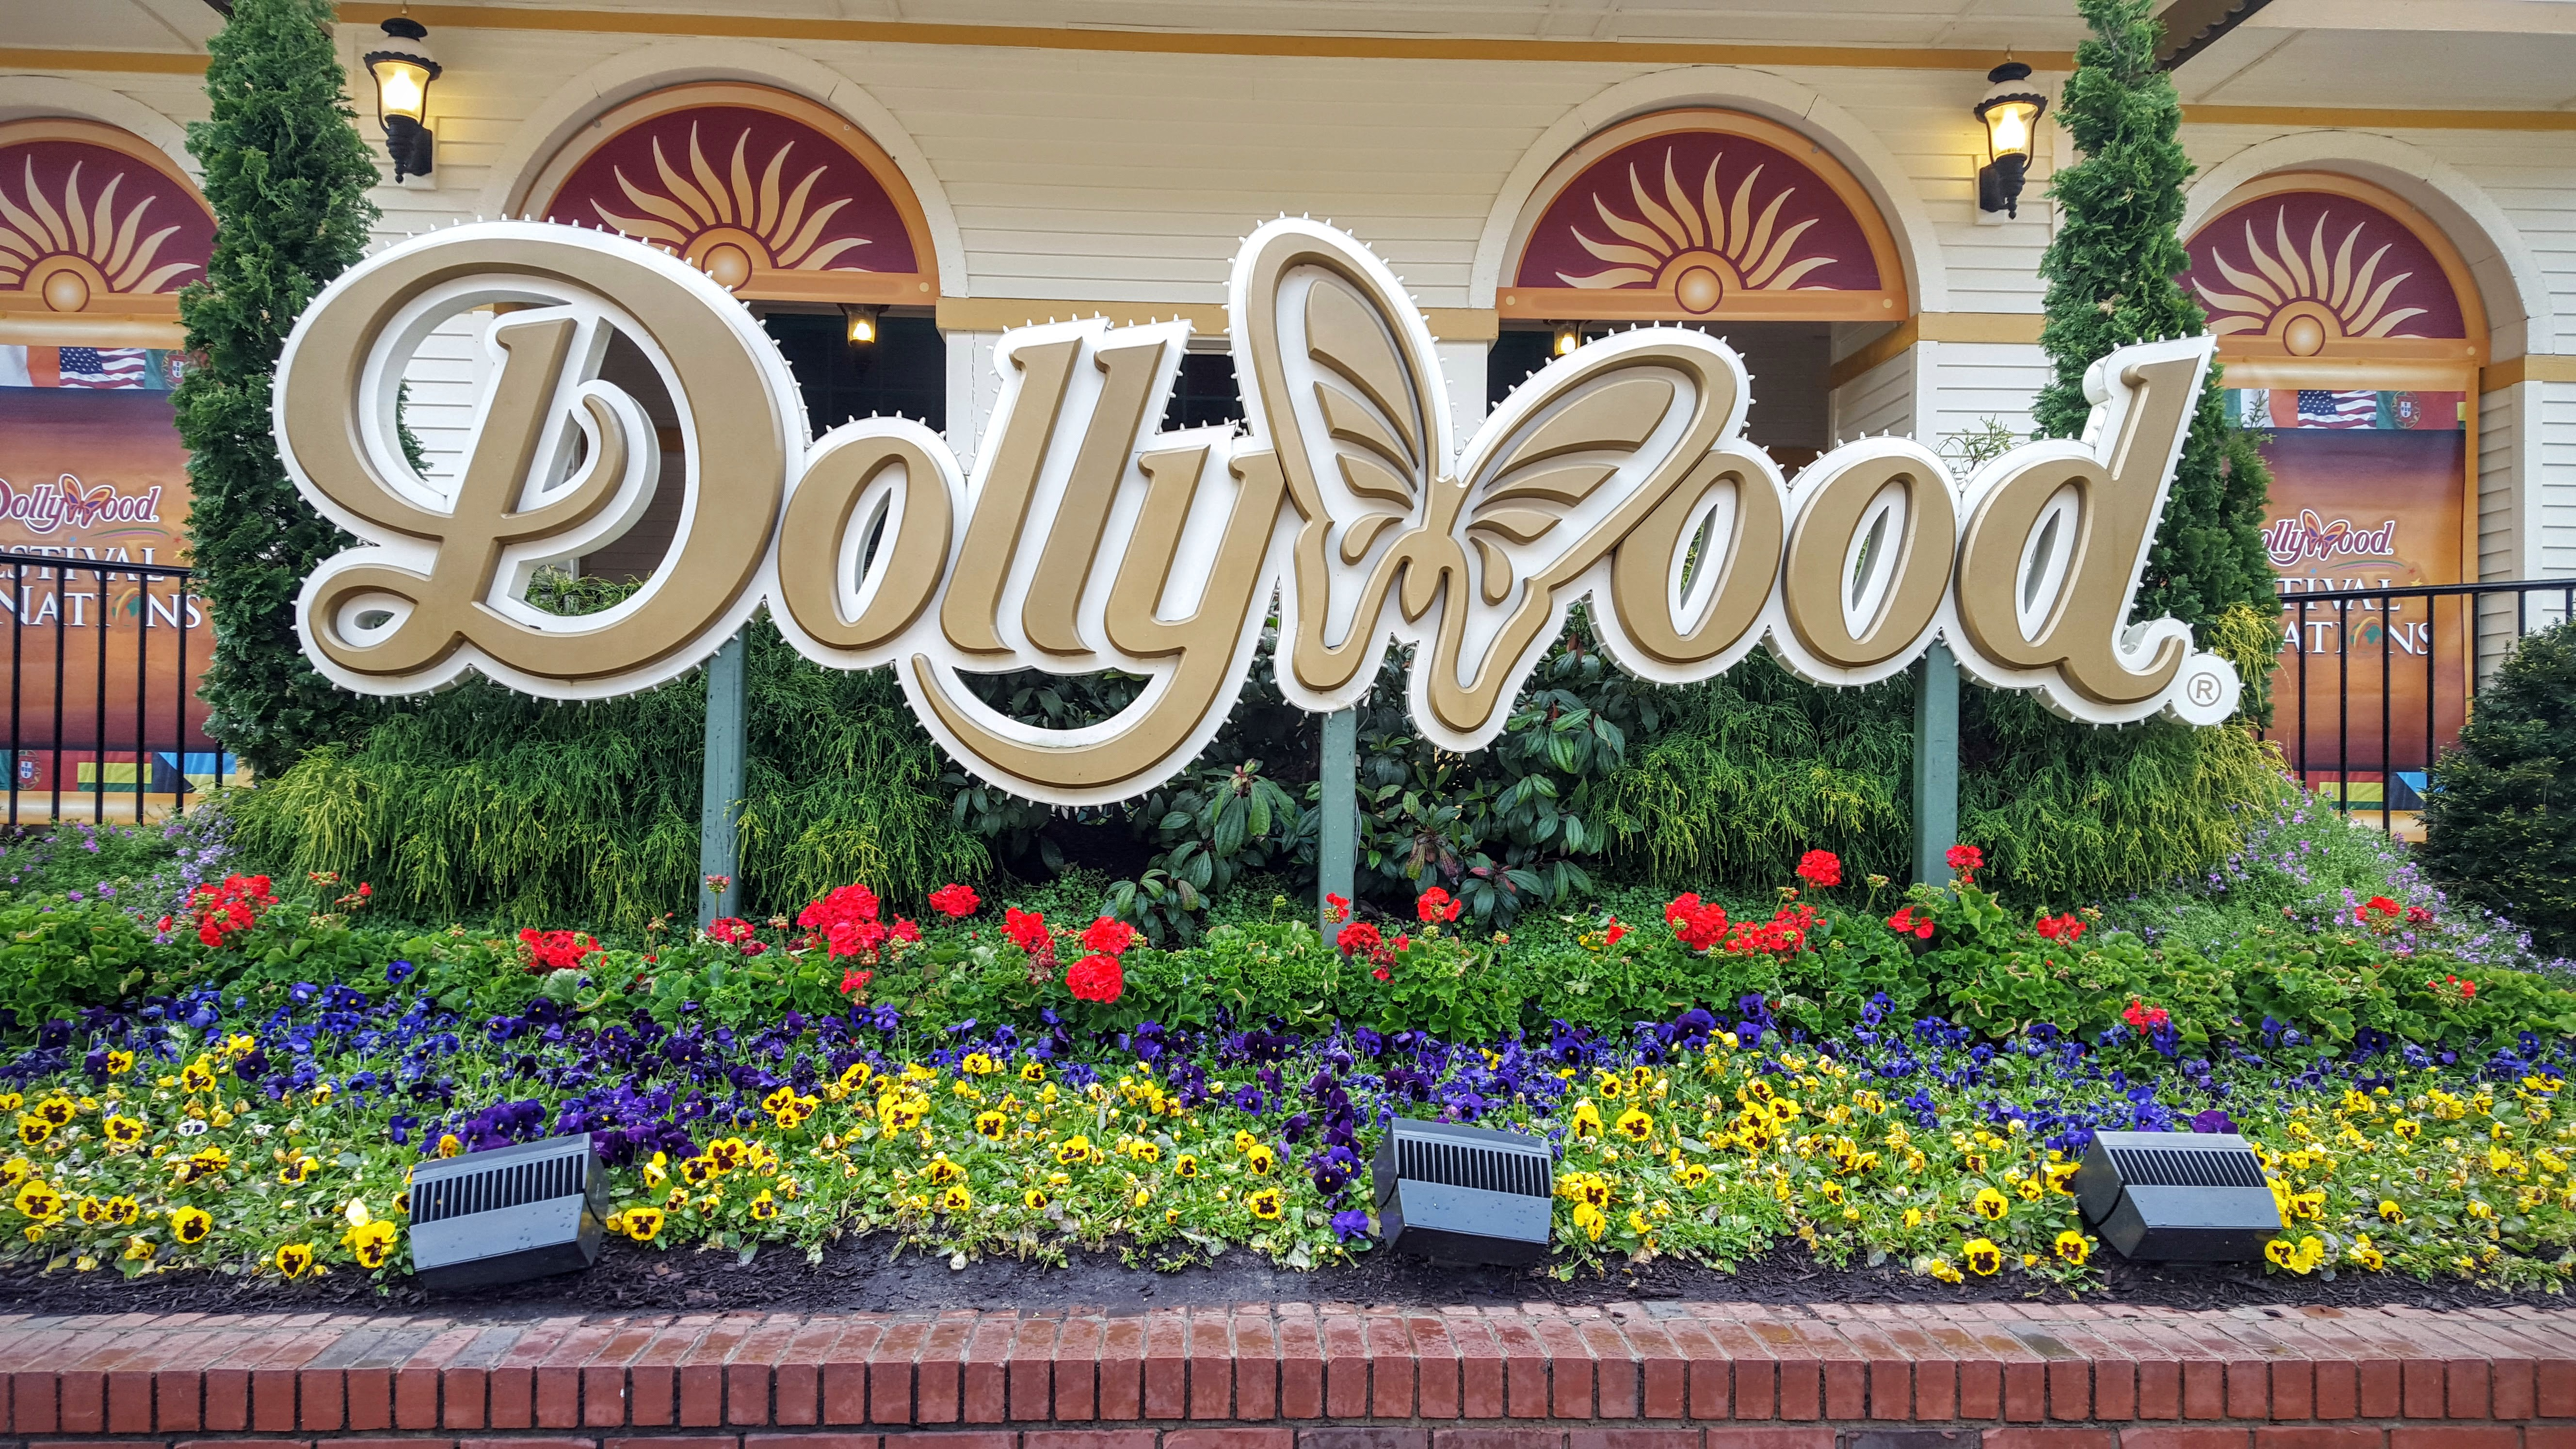 Worlds Fastest Wooden Roller Coaster Coming To Dollywood